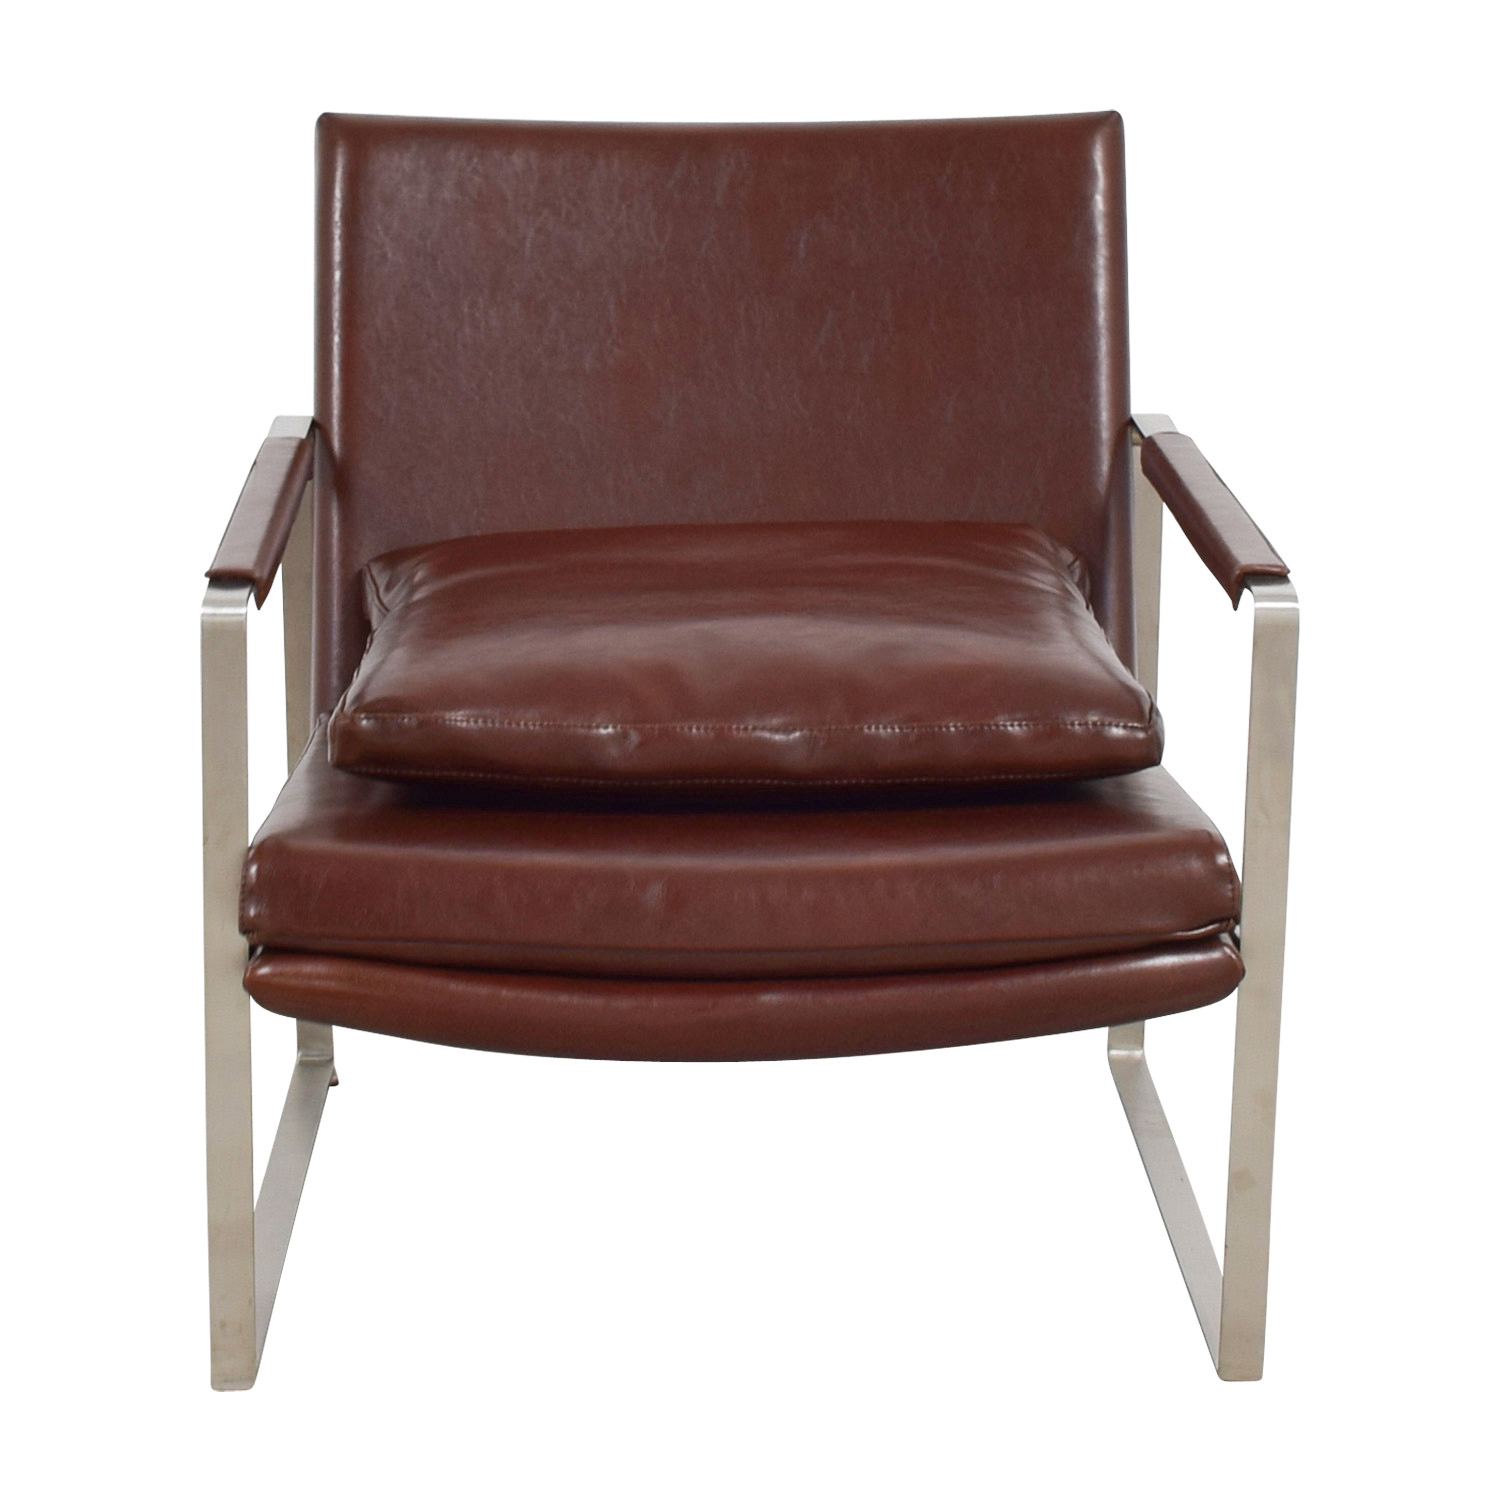 Soho Concept Soho Concept Zara Brown And Chrome Accent Chair Price ...